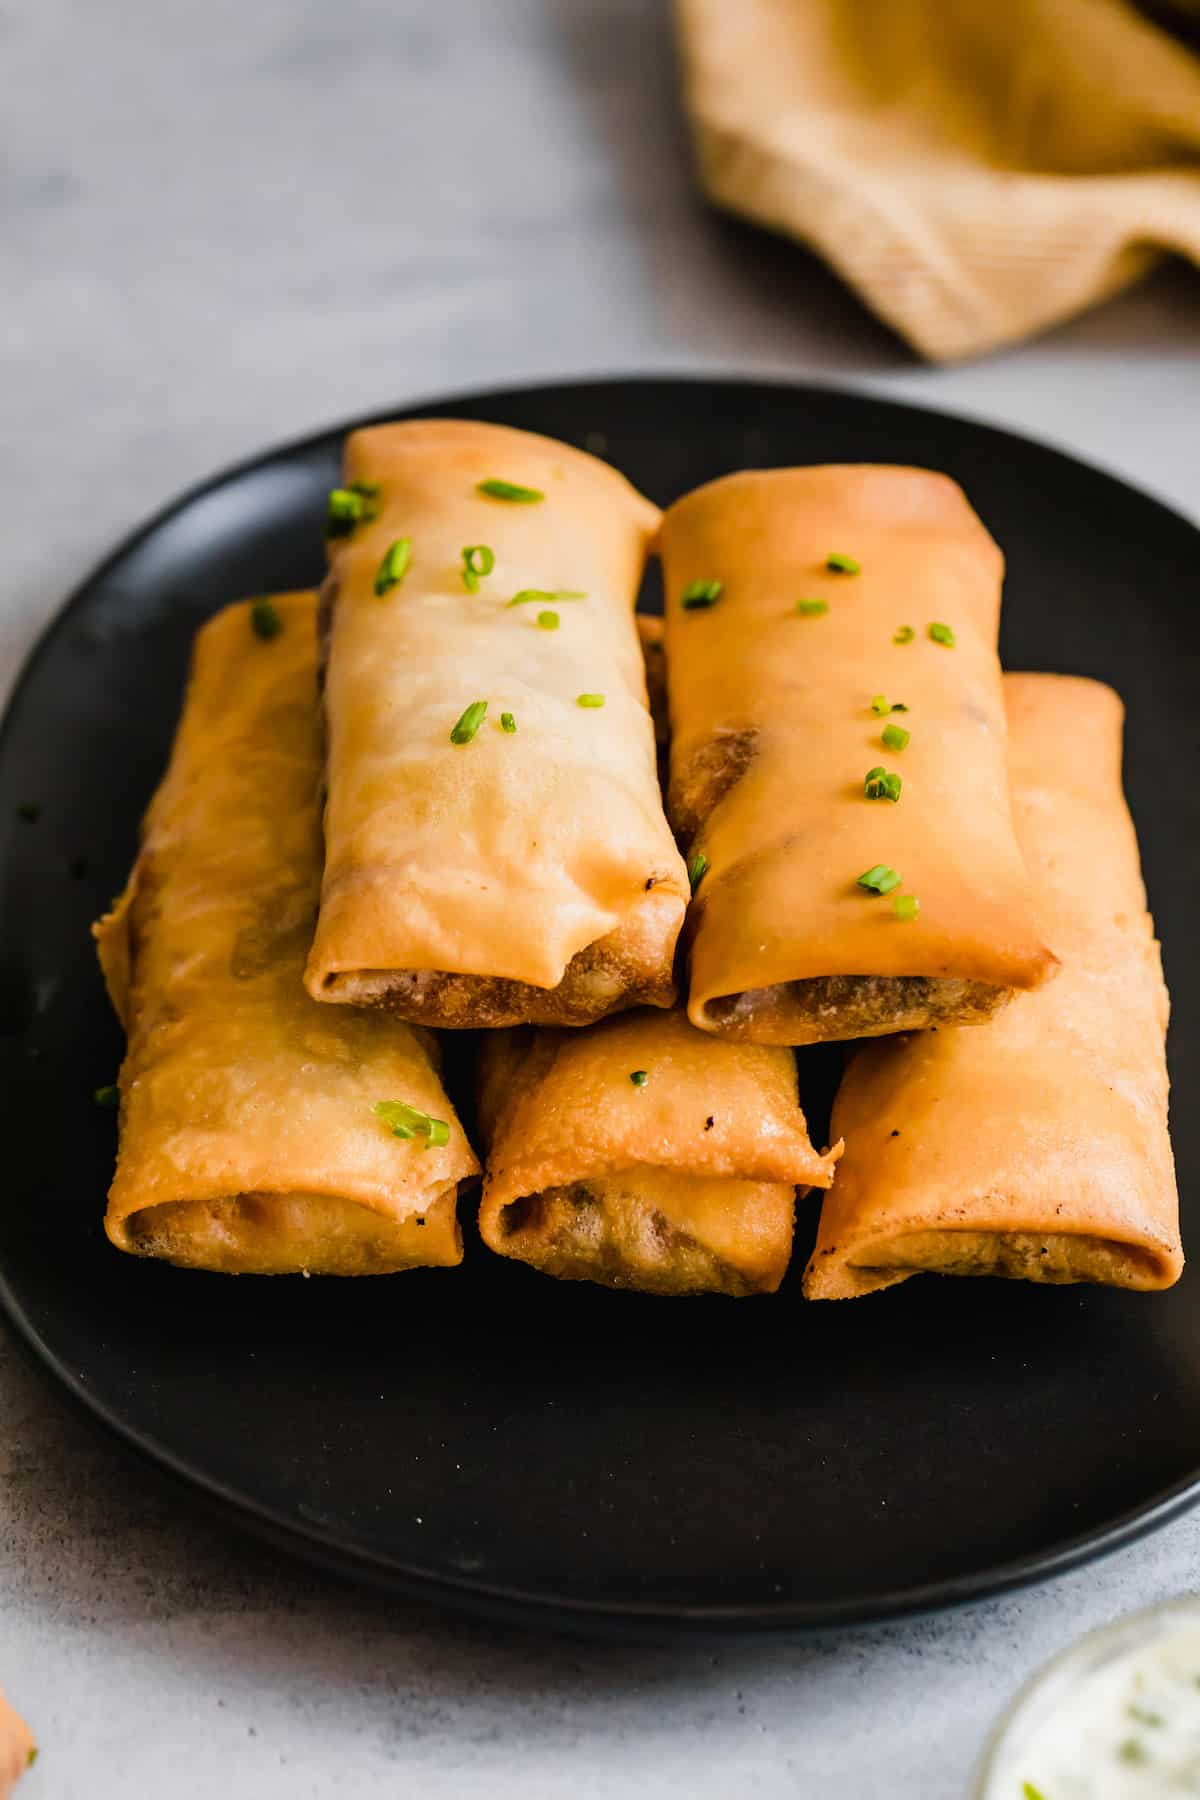 Five Egg Rolls Piled Neatly on a Shiny Black Plate